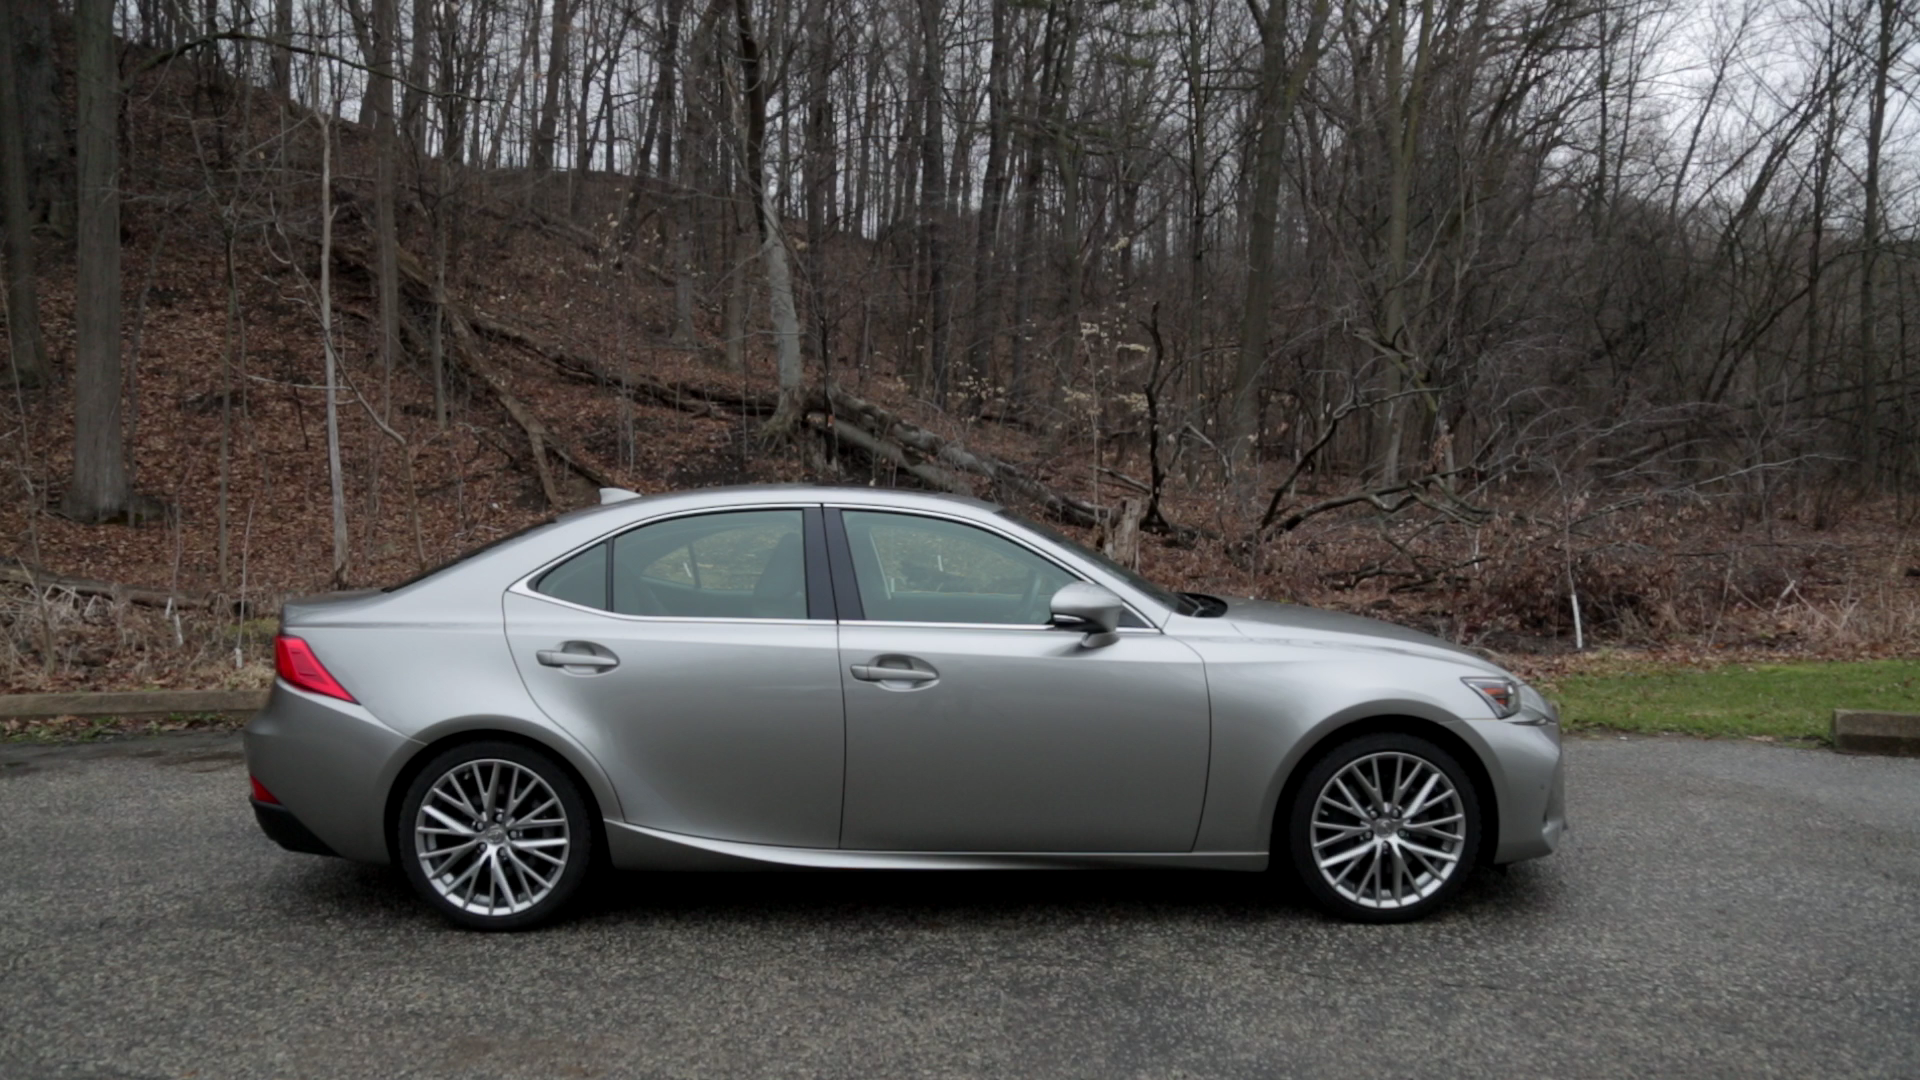 2017 Lexus Is 300 Awd Review 14